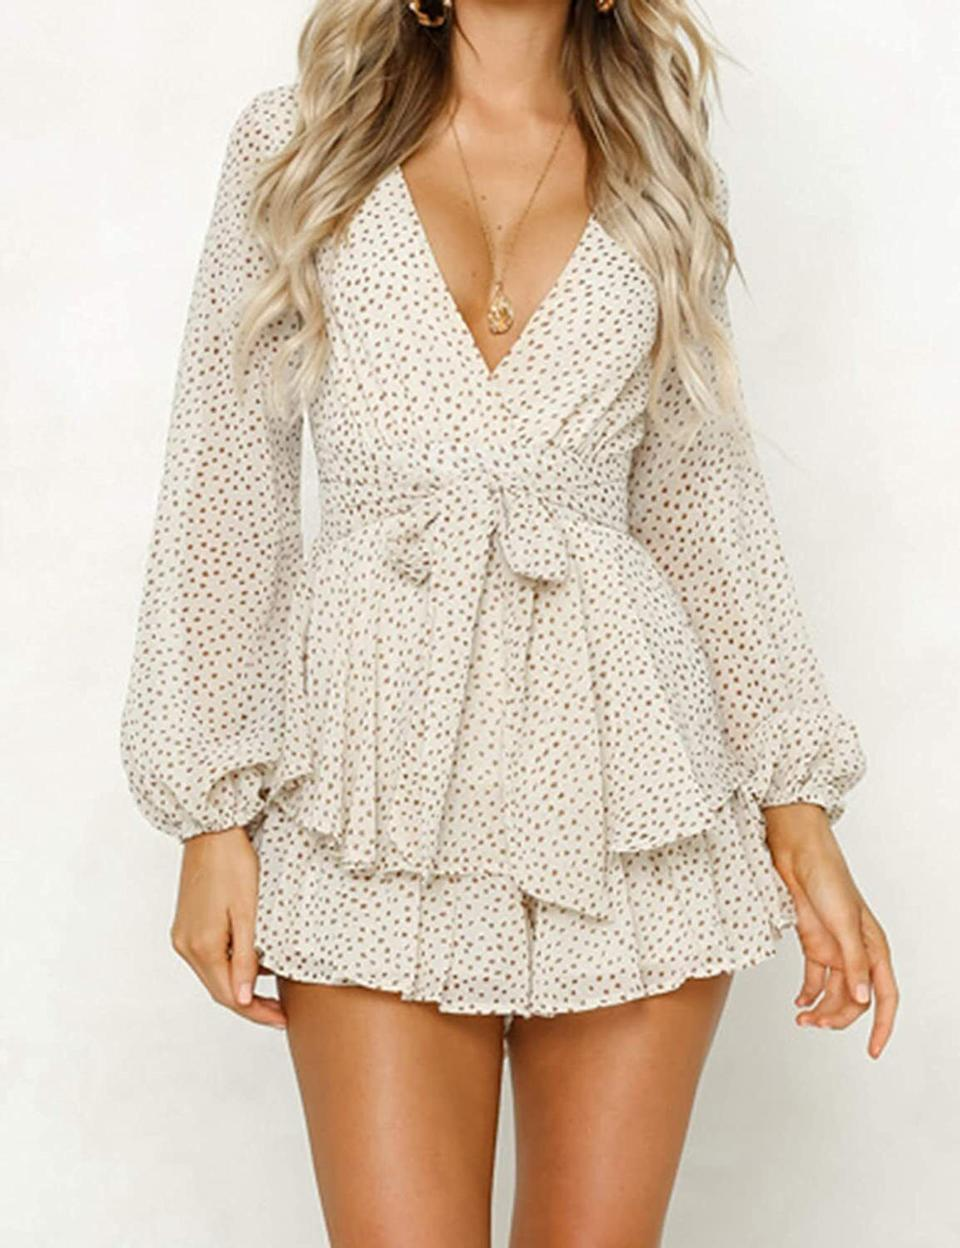 """You won't have to worry about windy conditions in this since the shorts will have you covered, and the romantic ruffles? Oh, they'll make this piece your perfect match for all warm-weather activities.<br /><br /><strong>Promising review:</strong>""""This is probably my favorite romper to date! You can dress it up with heels, wedges or make it a more casual outfit with a cute jean jacket and white sneakers."""" —<a href=""""https://www.amazon.com/gp/customer-reviews/R1DSA9HRPL4AX0?&linkCode=ll2&tag=huffpost-bfsyndication-20&linkId=33e96c97e9bbed0c87b0ad3d16154b52&language=en_US&ref_=as_li_ss_tl"""" target=""""_blank"""" rel=""""nofollow noopener noreferrer"""" data-skimlinks-tracking=""""5925990"""" data-vars-affiliate=""""Amazon"""" data-vars-href=""""https://www.amazon.com/gp/customer-reviews/R1DSA9HRPL4AX0?tag=bfjasminsandal-20&ascsubtag=5925990%2C21%2C36%2Cmobile_web%2C0%2C0%2C16629499"""" data-vars-keywords=""""cleaning,fast fashion"""" data-vars-link-id=""""16629499"""" data-vars-price="""""""" data-vars-product-id=""""21061352"""" data-vars-product-img="""""""" data-vars-product-title="""""""" data-vars-retailers=""""Amazon"""">Farzad Ezami</a><br /><br /><a href=""""https://www.amazon.com/Relipop-Womens-Jumpsuits-V-Neck-Rompers/dp/B07M6VRDDK?&linkCode=ll1&tag=huffpost-bfsyndication-20&linkId=c1146023d5277d87dc113fed64b4c375&language=en_US&ref_=as_li_ss_tl"""" target=""""_blank"""" rel=""""noopener noreferrer""""><strong>Get it from Amazon for$23.99+(available in sizes S-XL and in nine colors and patterns).</strong></a>"""